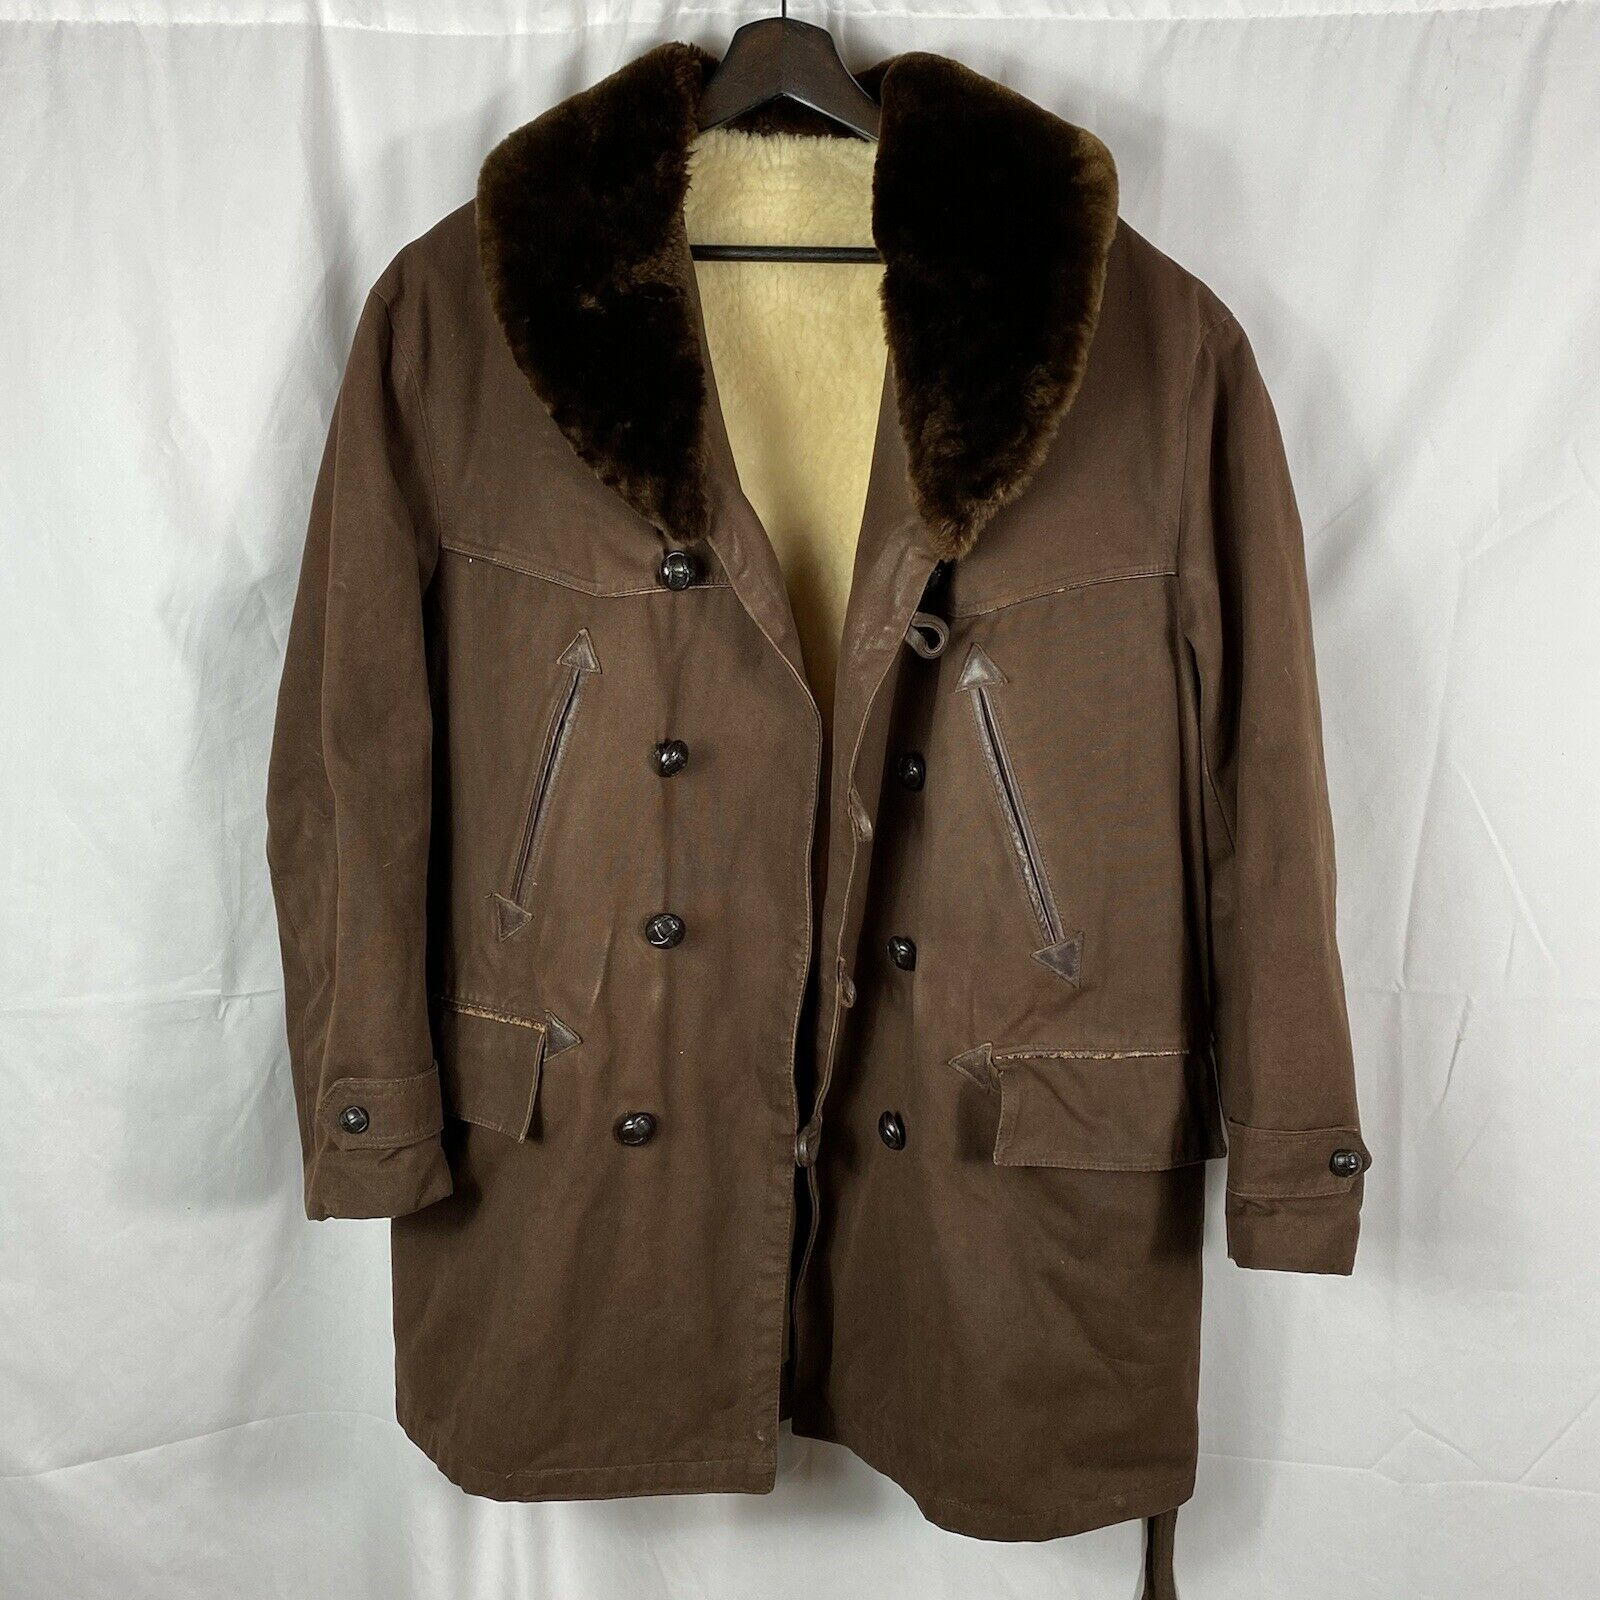 Vintage 1950s French Workwear Canadian Winter Jac… - image 1